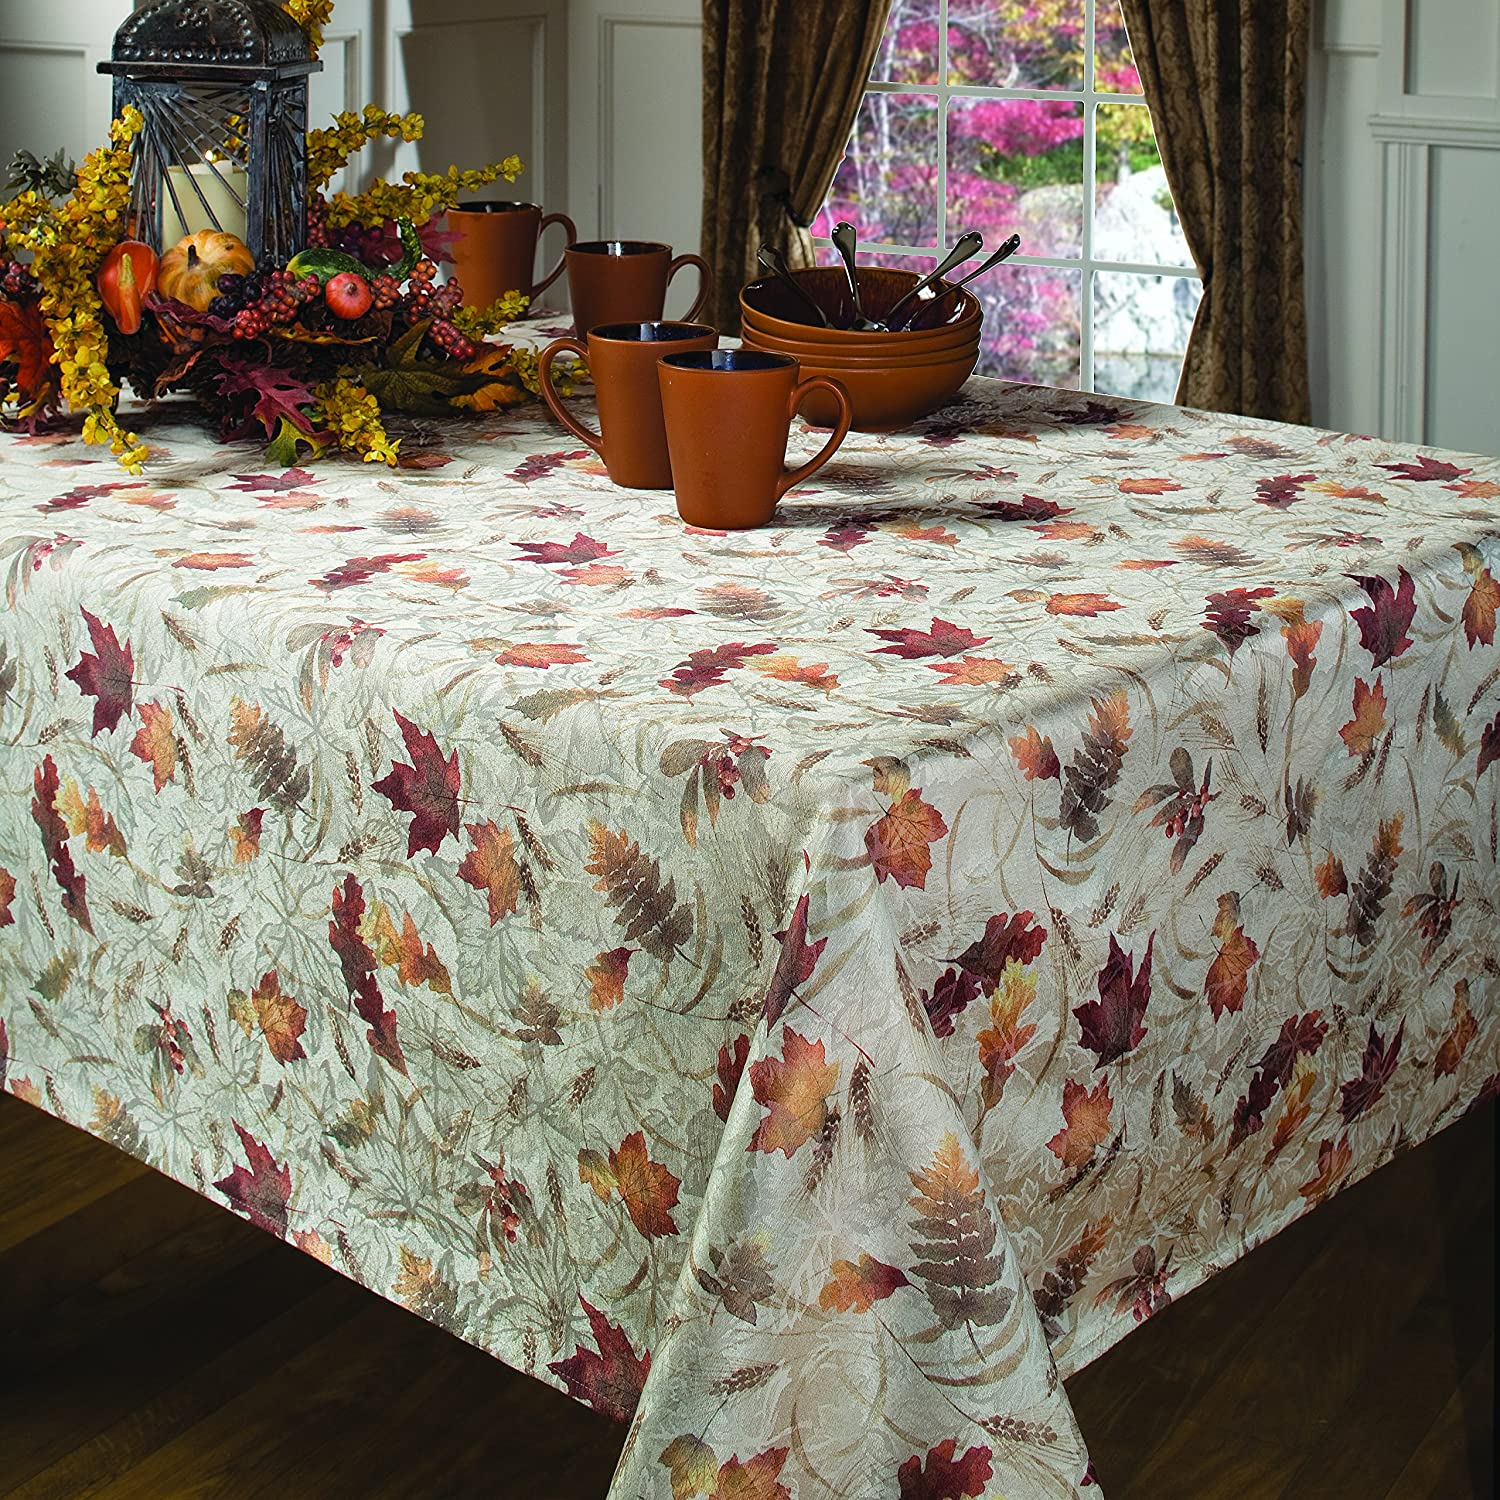 Amazon.com: Benson Mills Natures Leaves Jacquard Printed Fabric Tablecloth,  60 Inch By 104 Inch: Home U0026 Kitchen